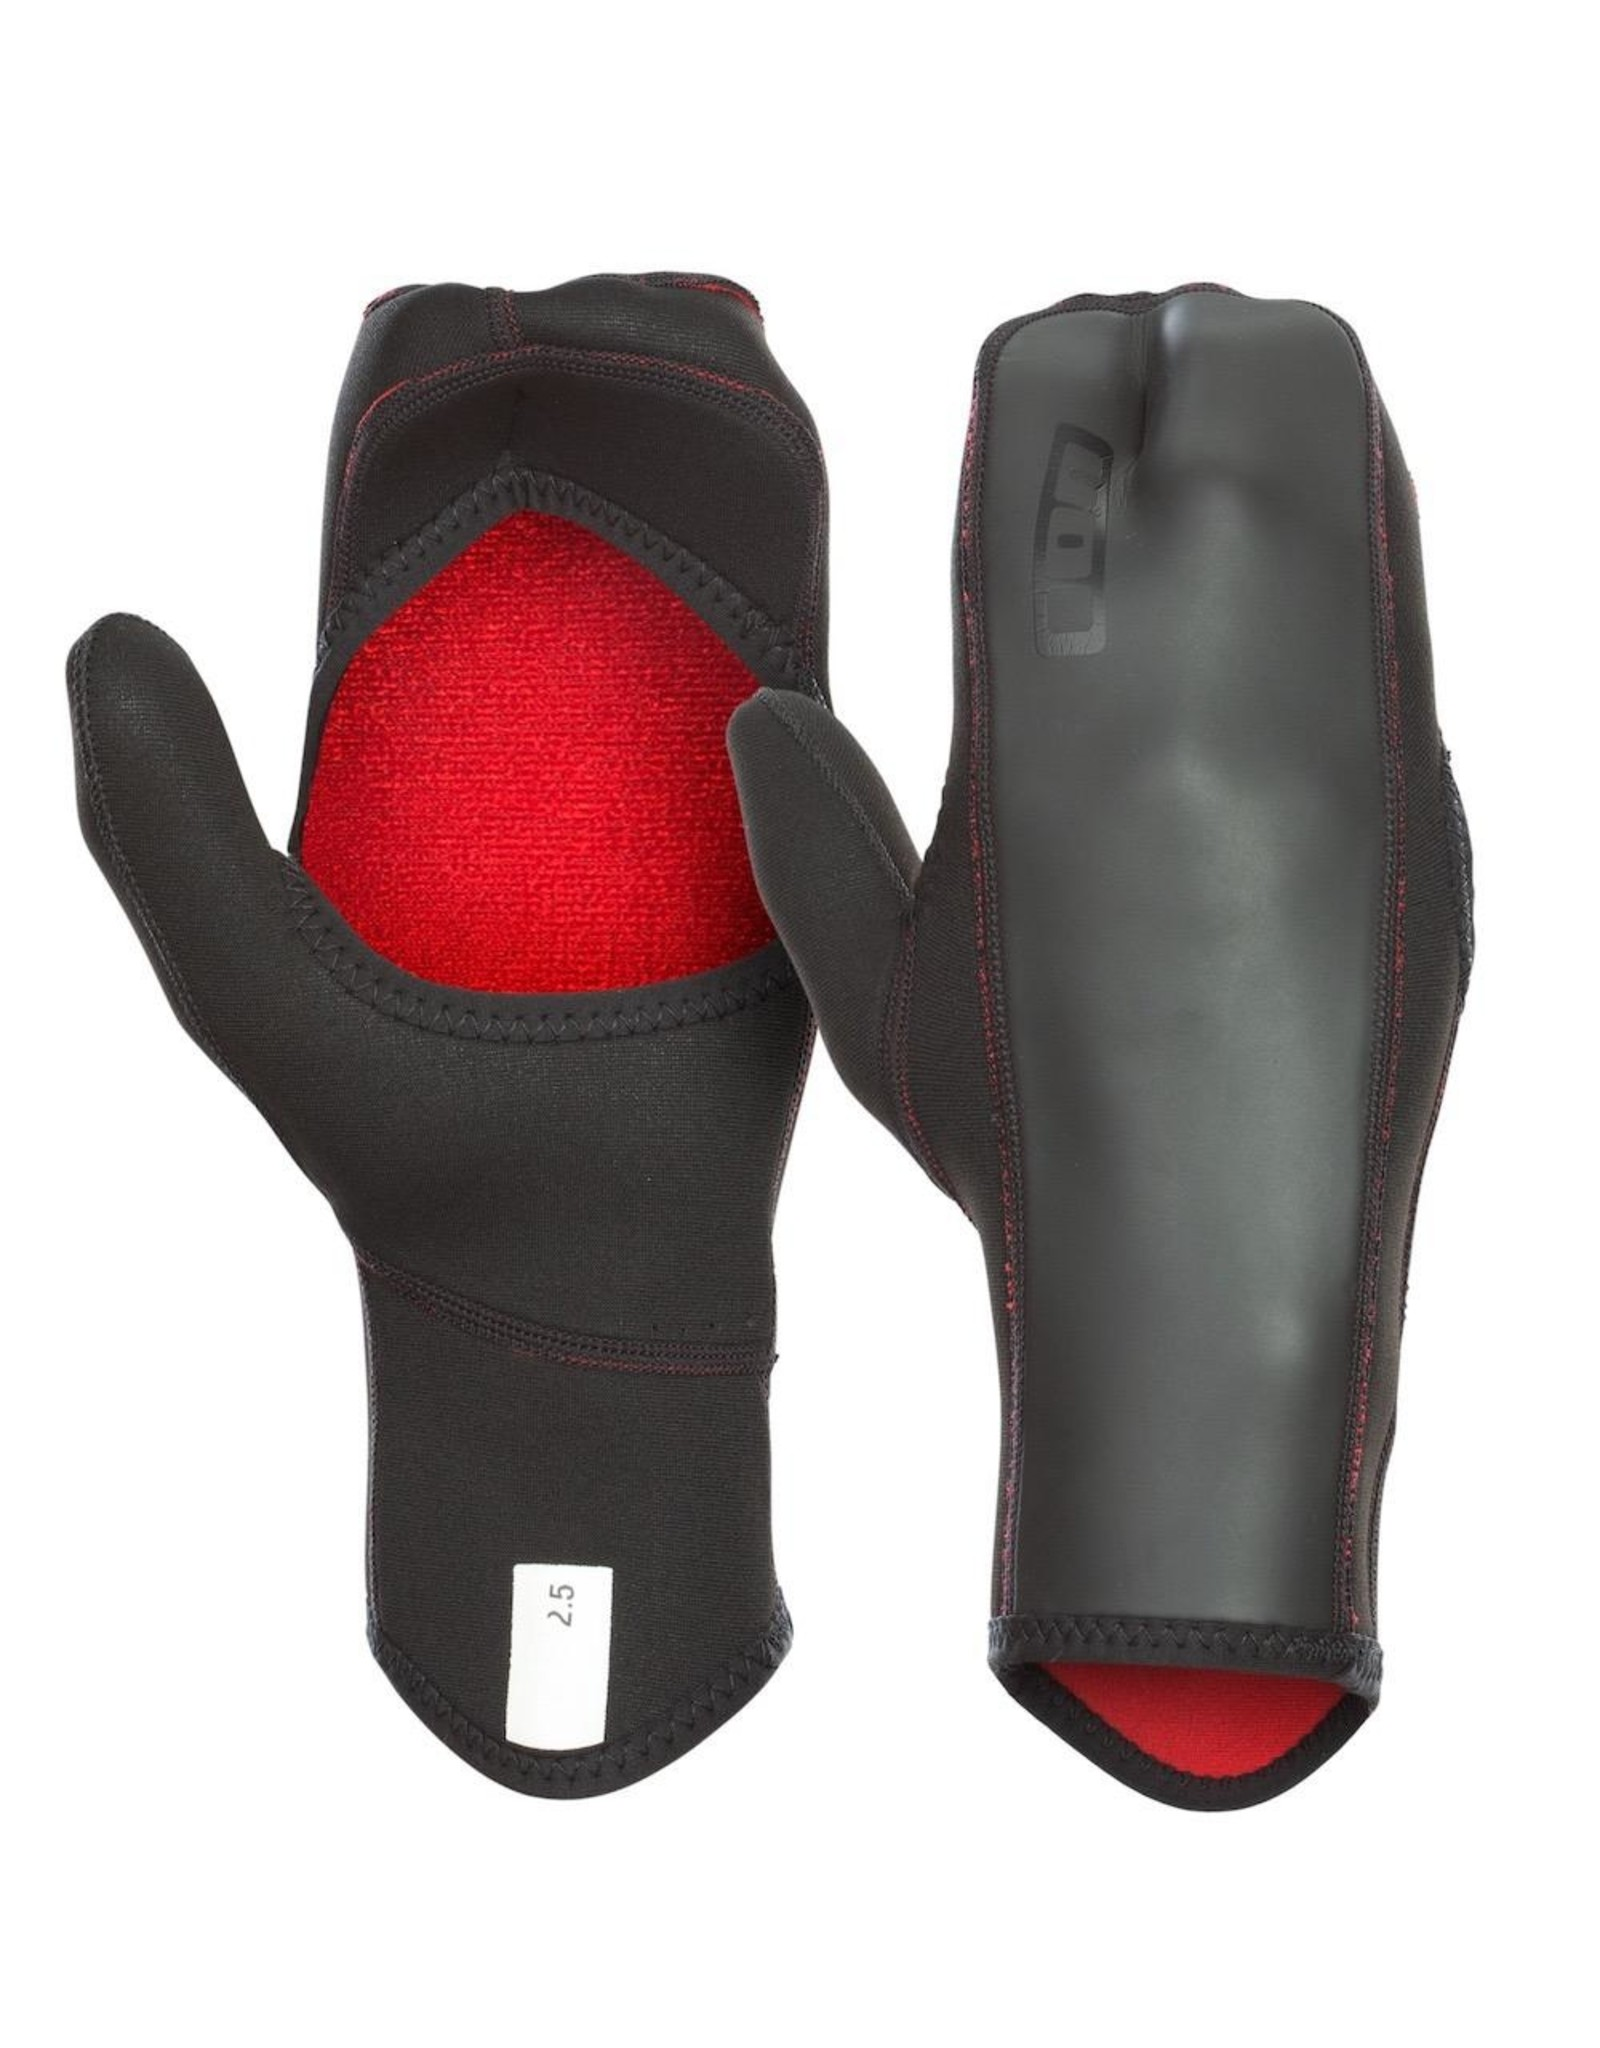 Ion - Open Palm Mittens 2.5 - 46/XS - black